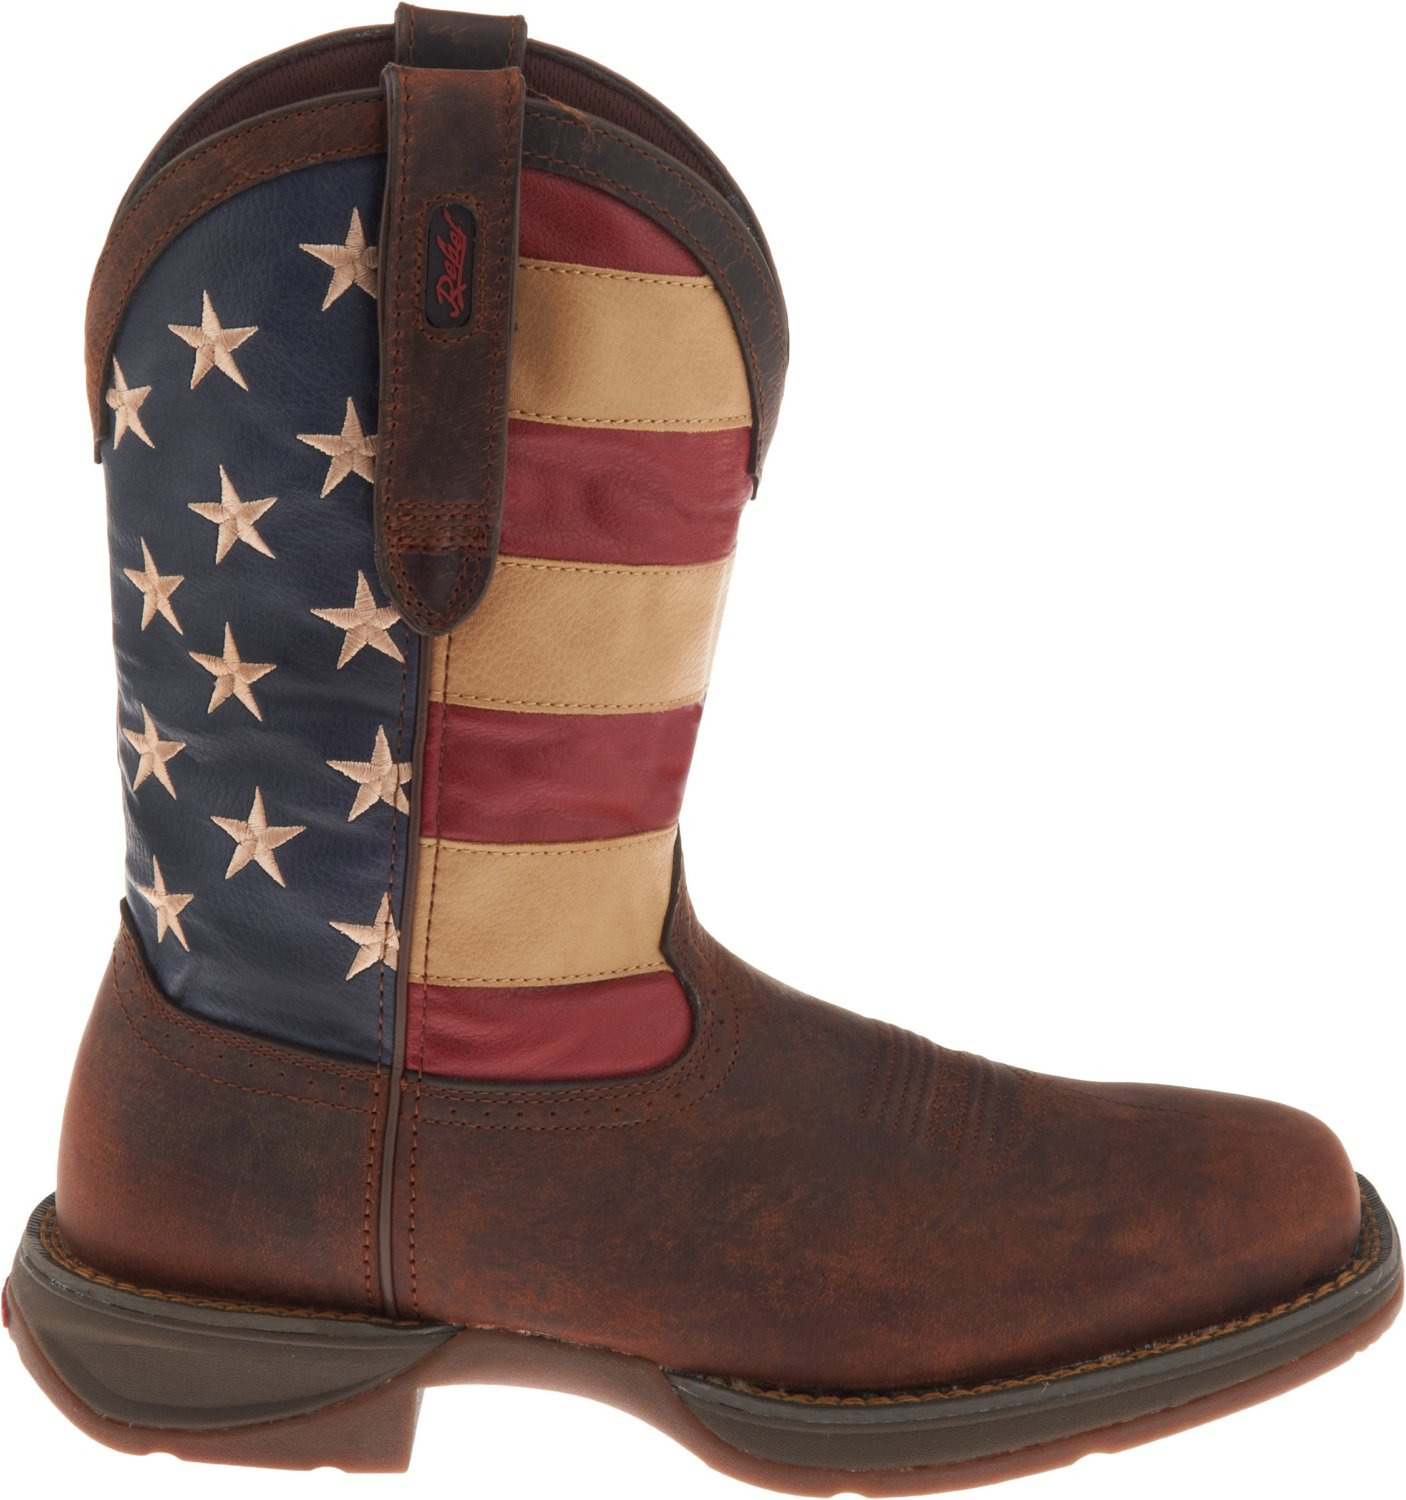 a62385da358 Display product reviews for Rocky Men s Rebel American Flag Western Boots